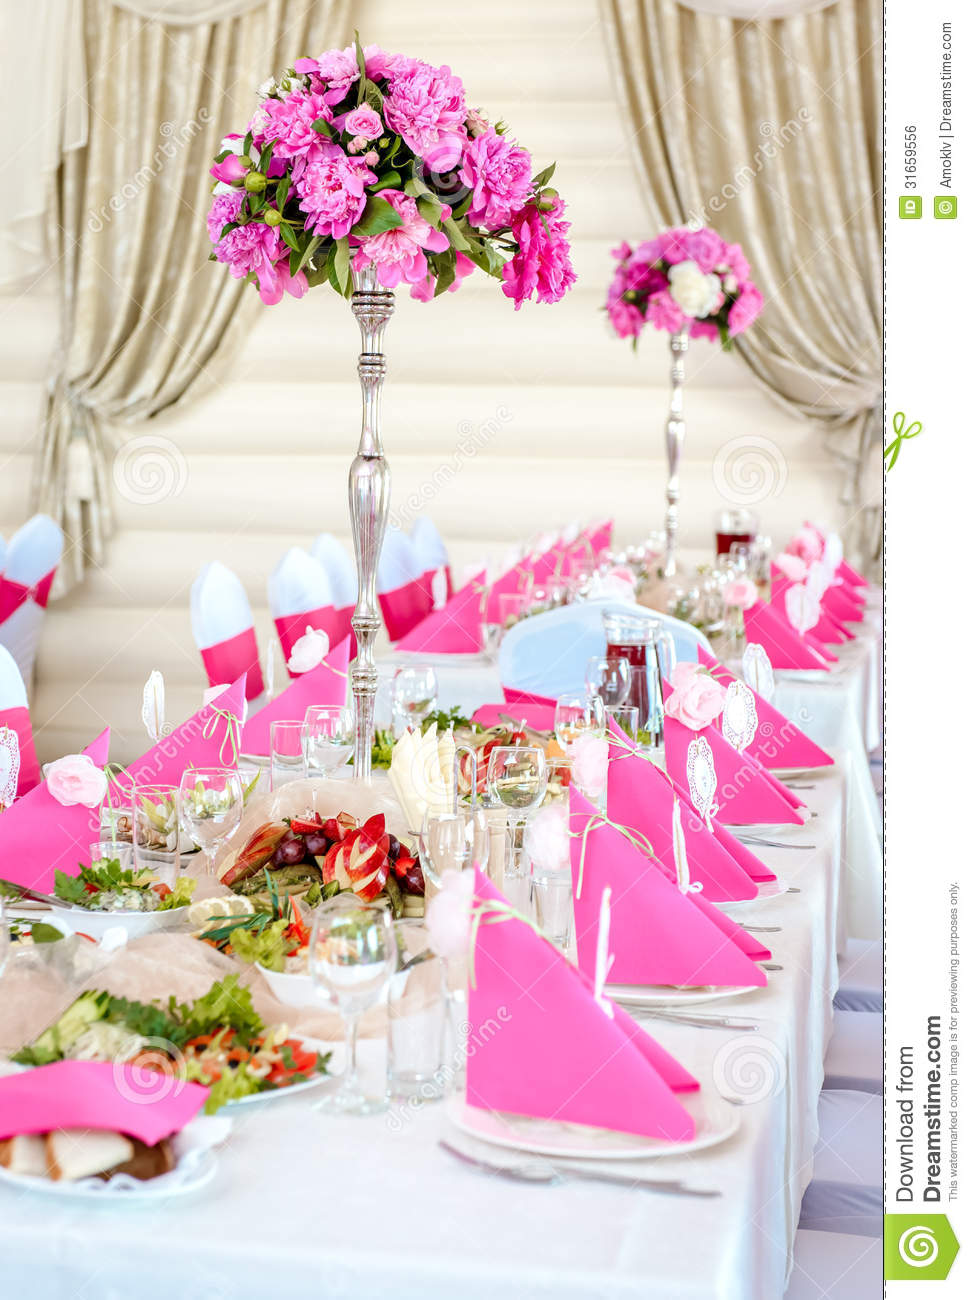 Great Pink Wedding Decorations Image Collections Wedding Decoration Ideas Wedding  Decorations White And Pink Fuschia Wedding Reception